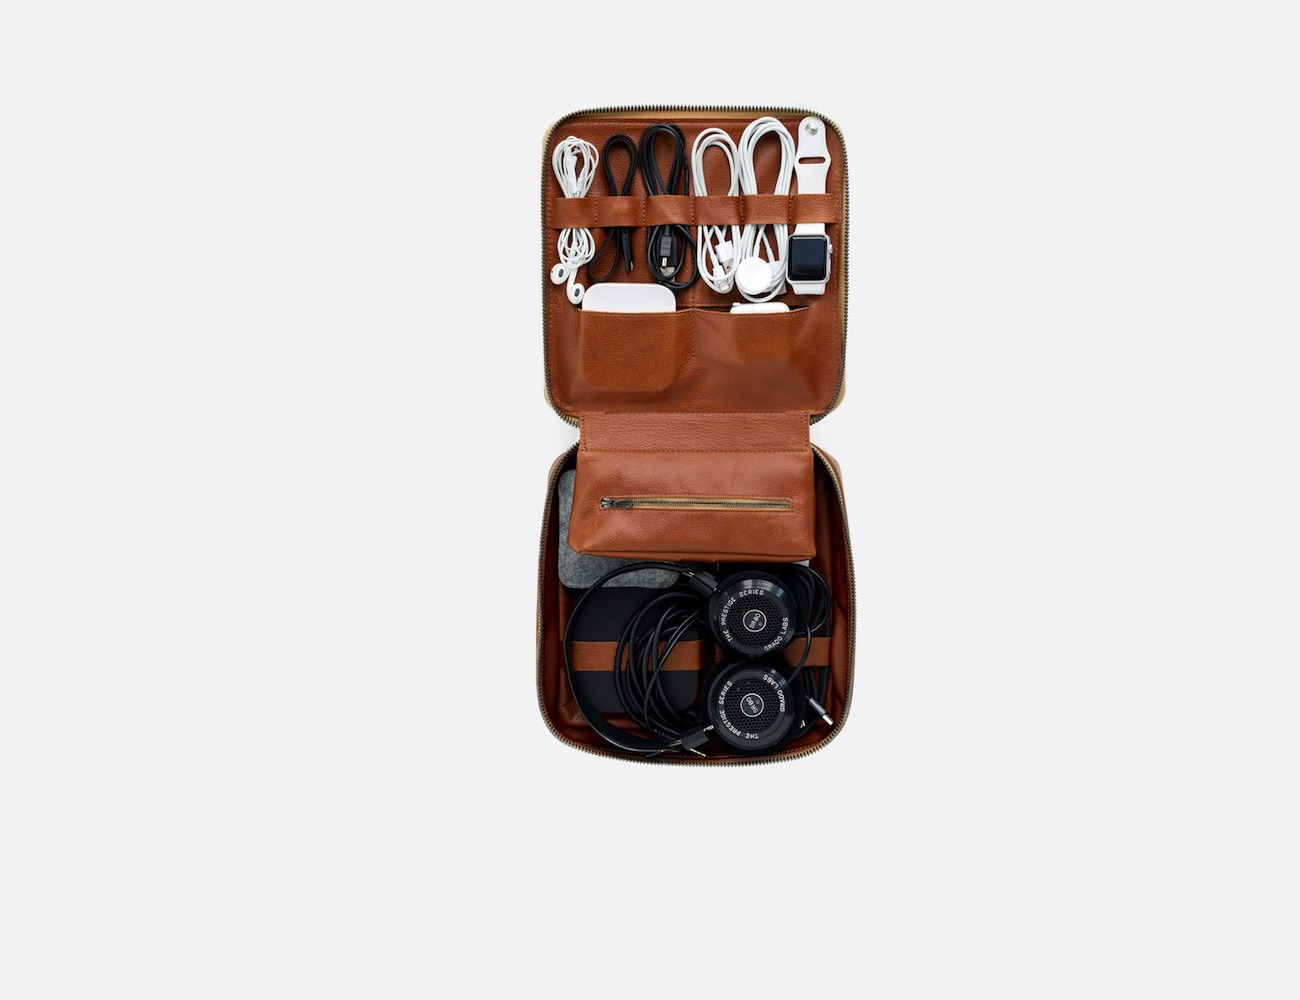 Tech Dopp Kit by This is Ground